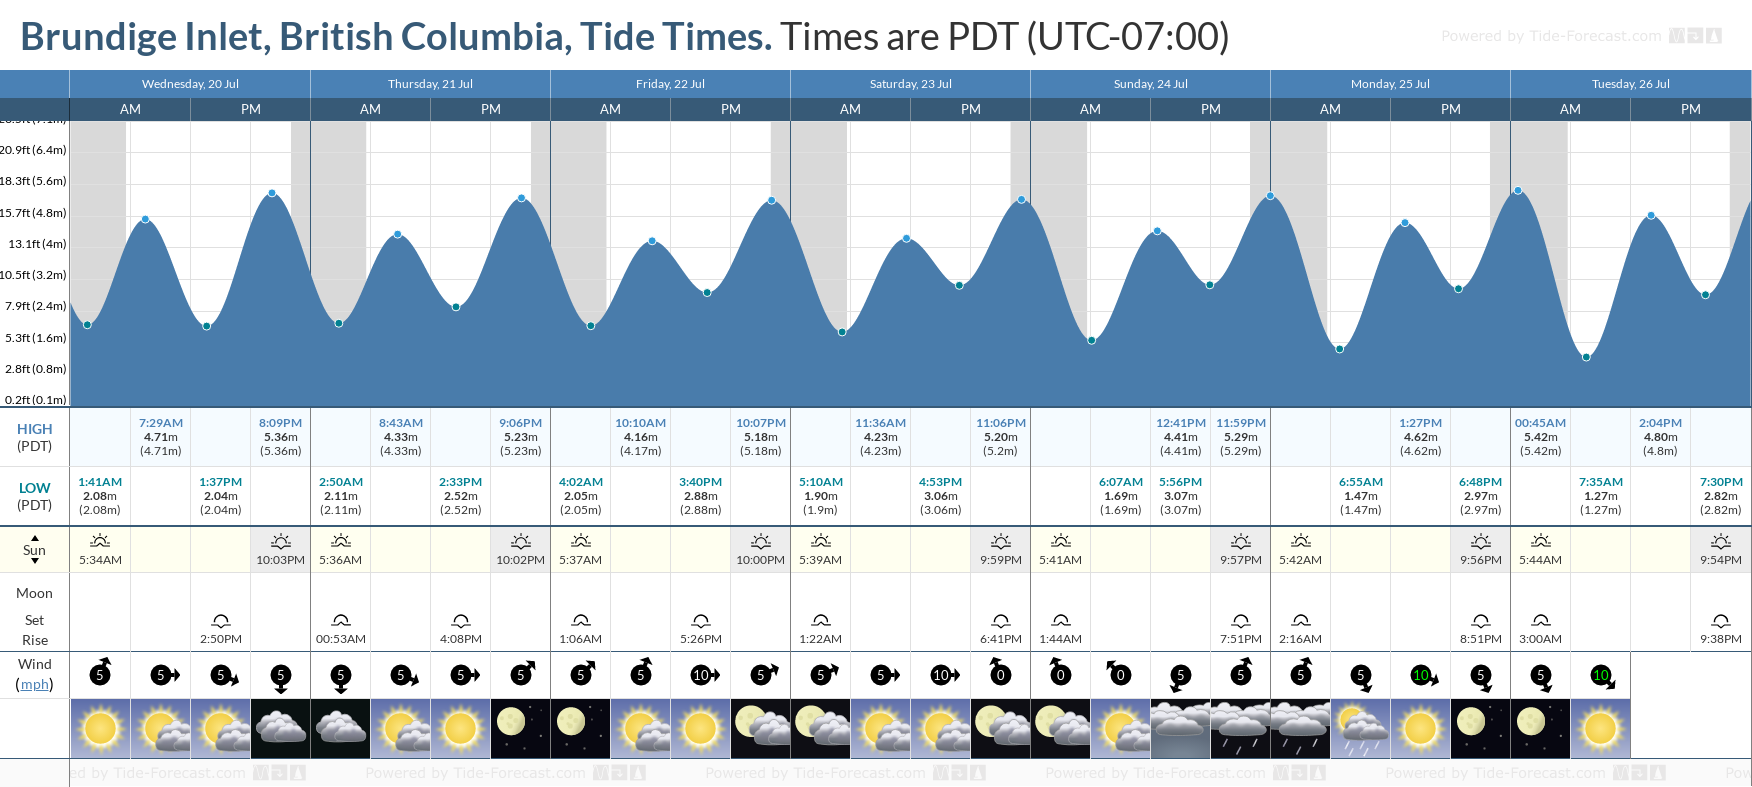 Brundige Inlet, British Columbia Tide Chart including high and low tide tide times for the next 7 days